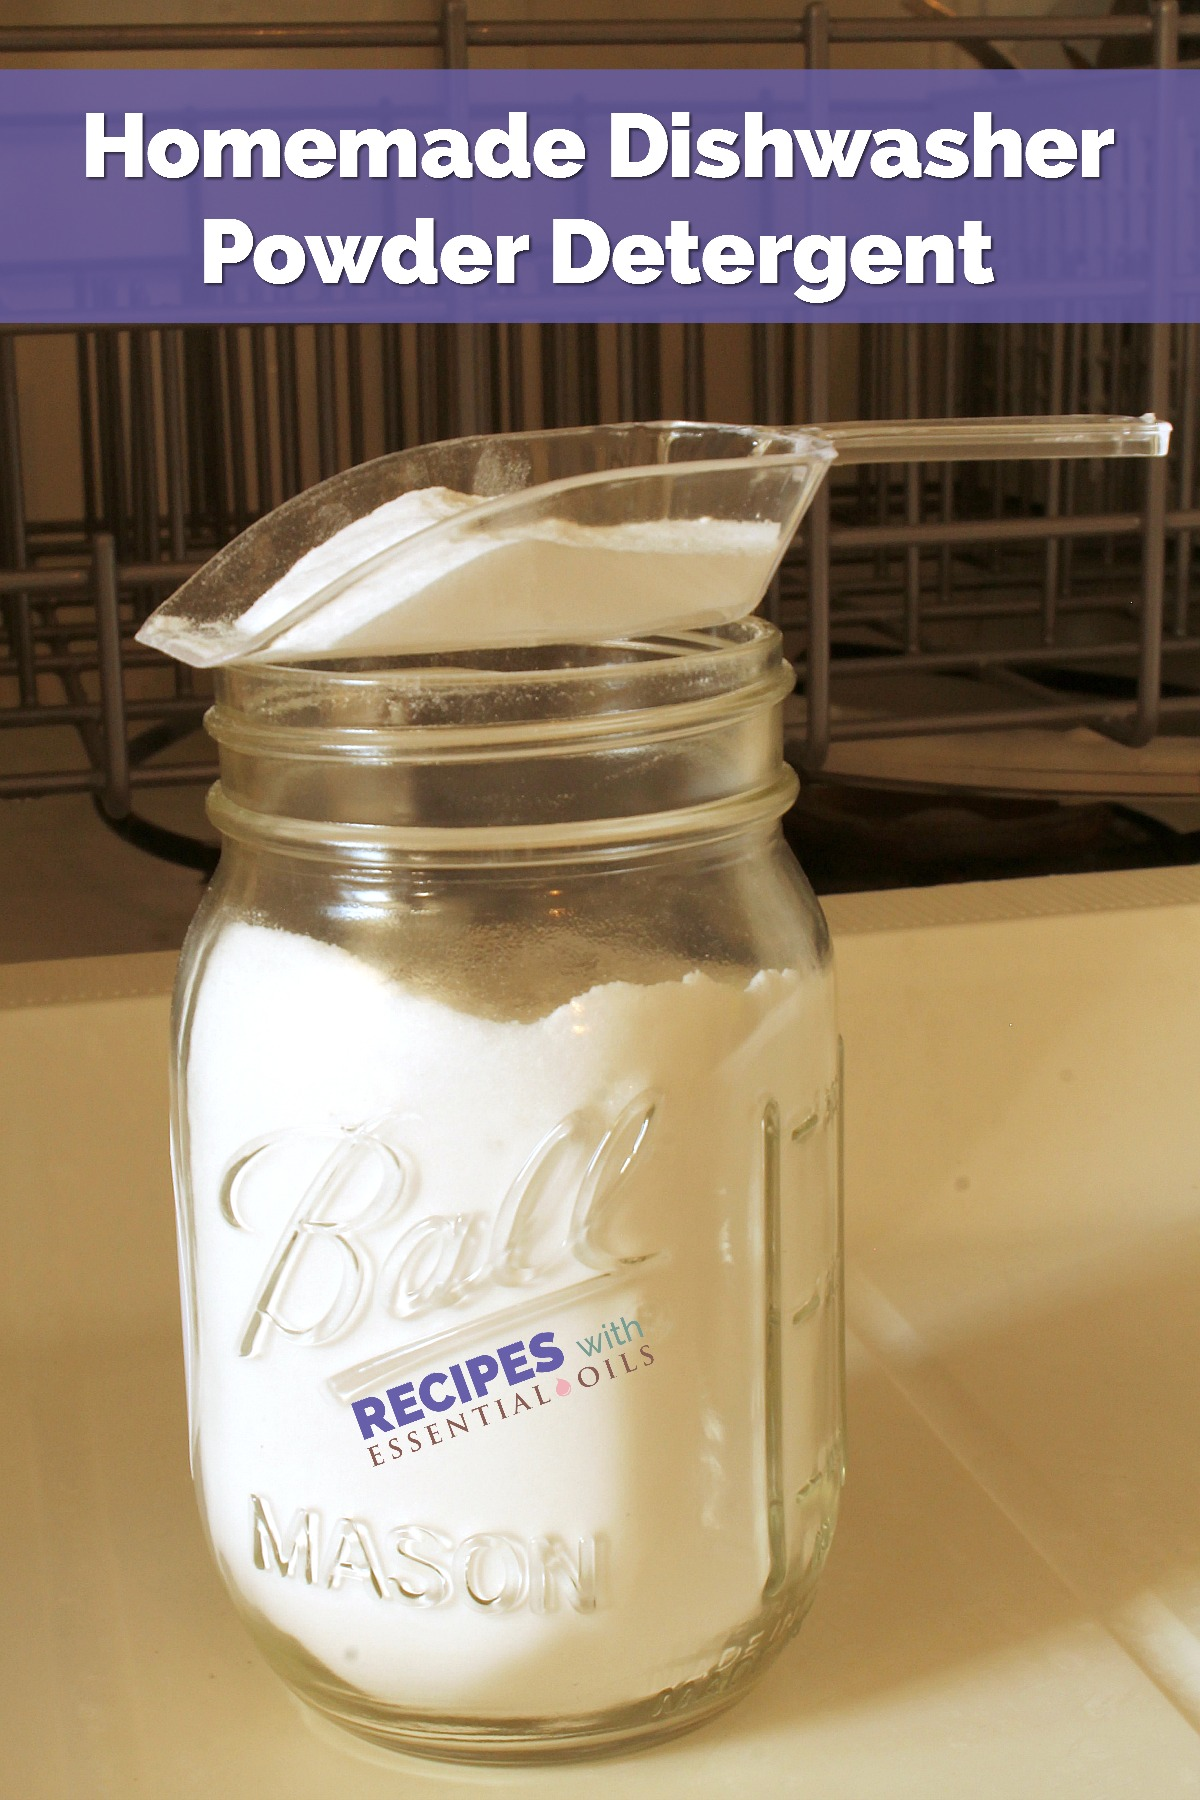 Homemade Dishwasher Powder Detergent Recipes from RecipeswithEssentialOils.com